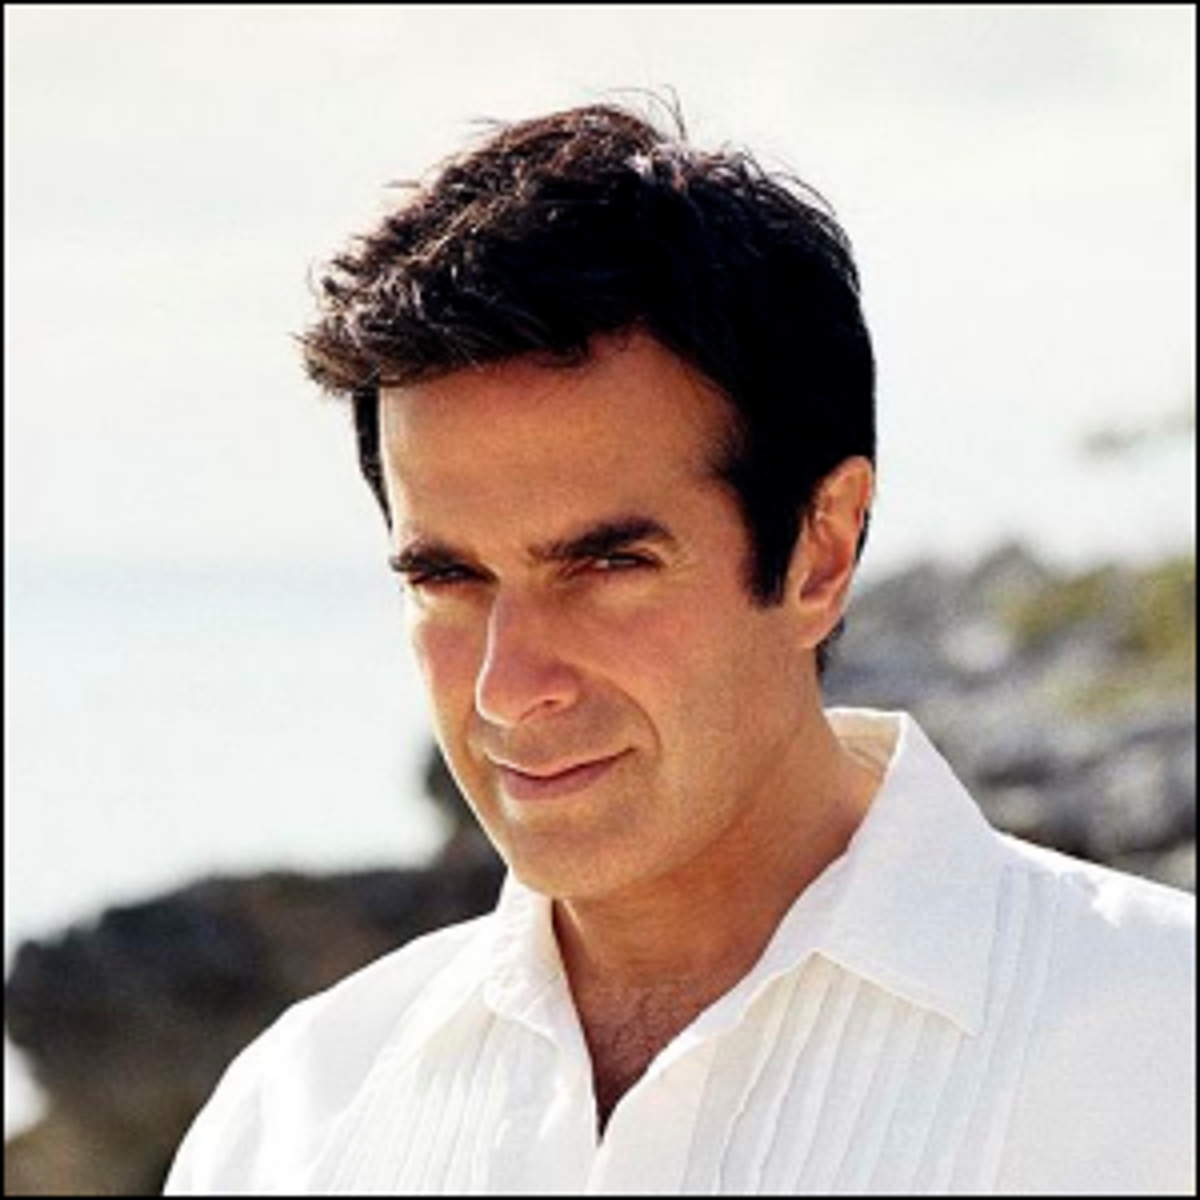 A 2014 photo of David Copperfield taken in the Bahamas.